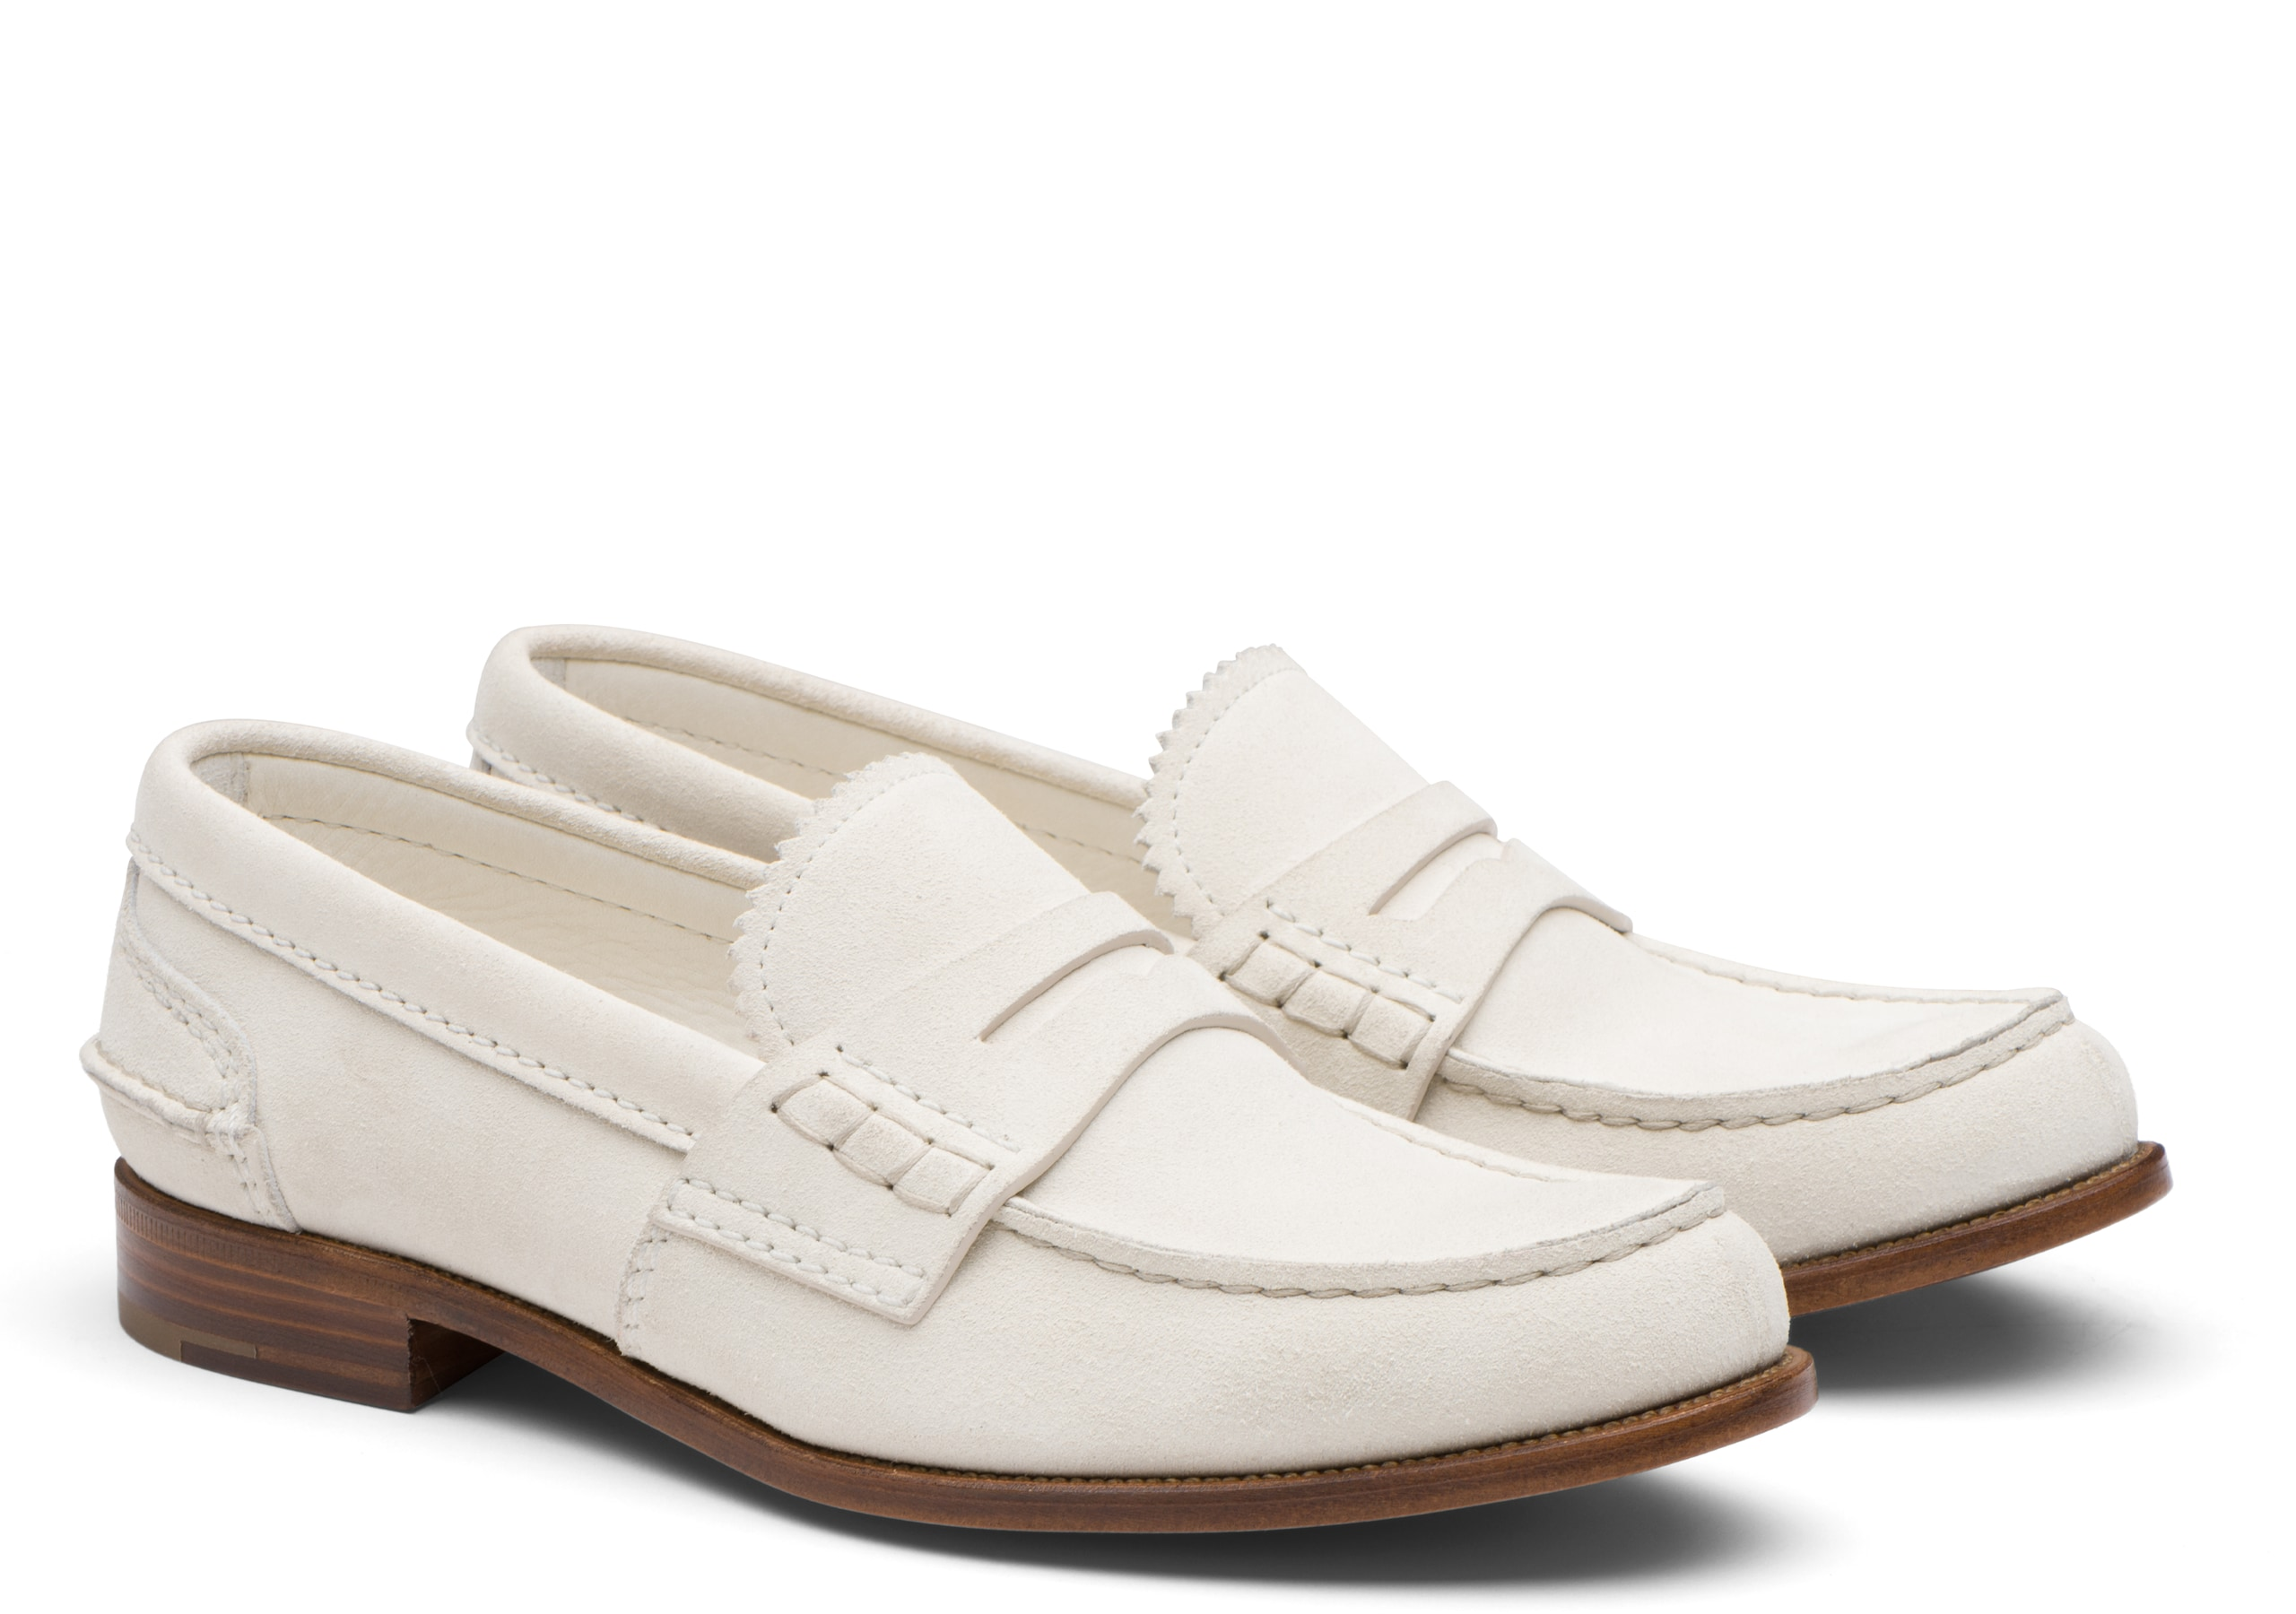 Pembrey 2w Church's Suede Loafer White